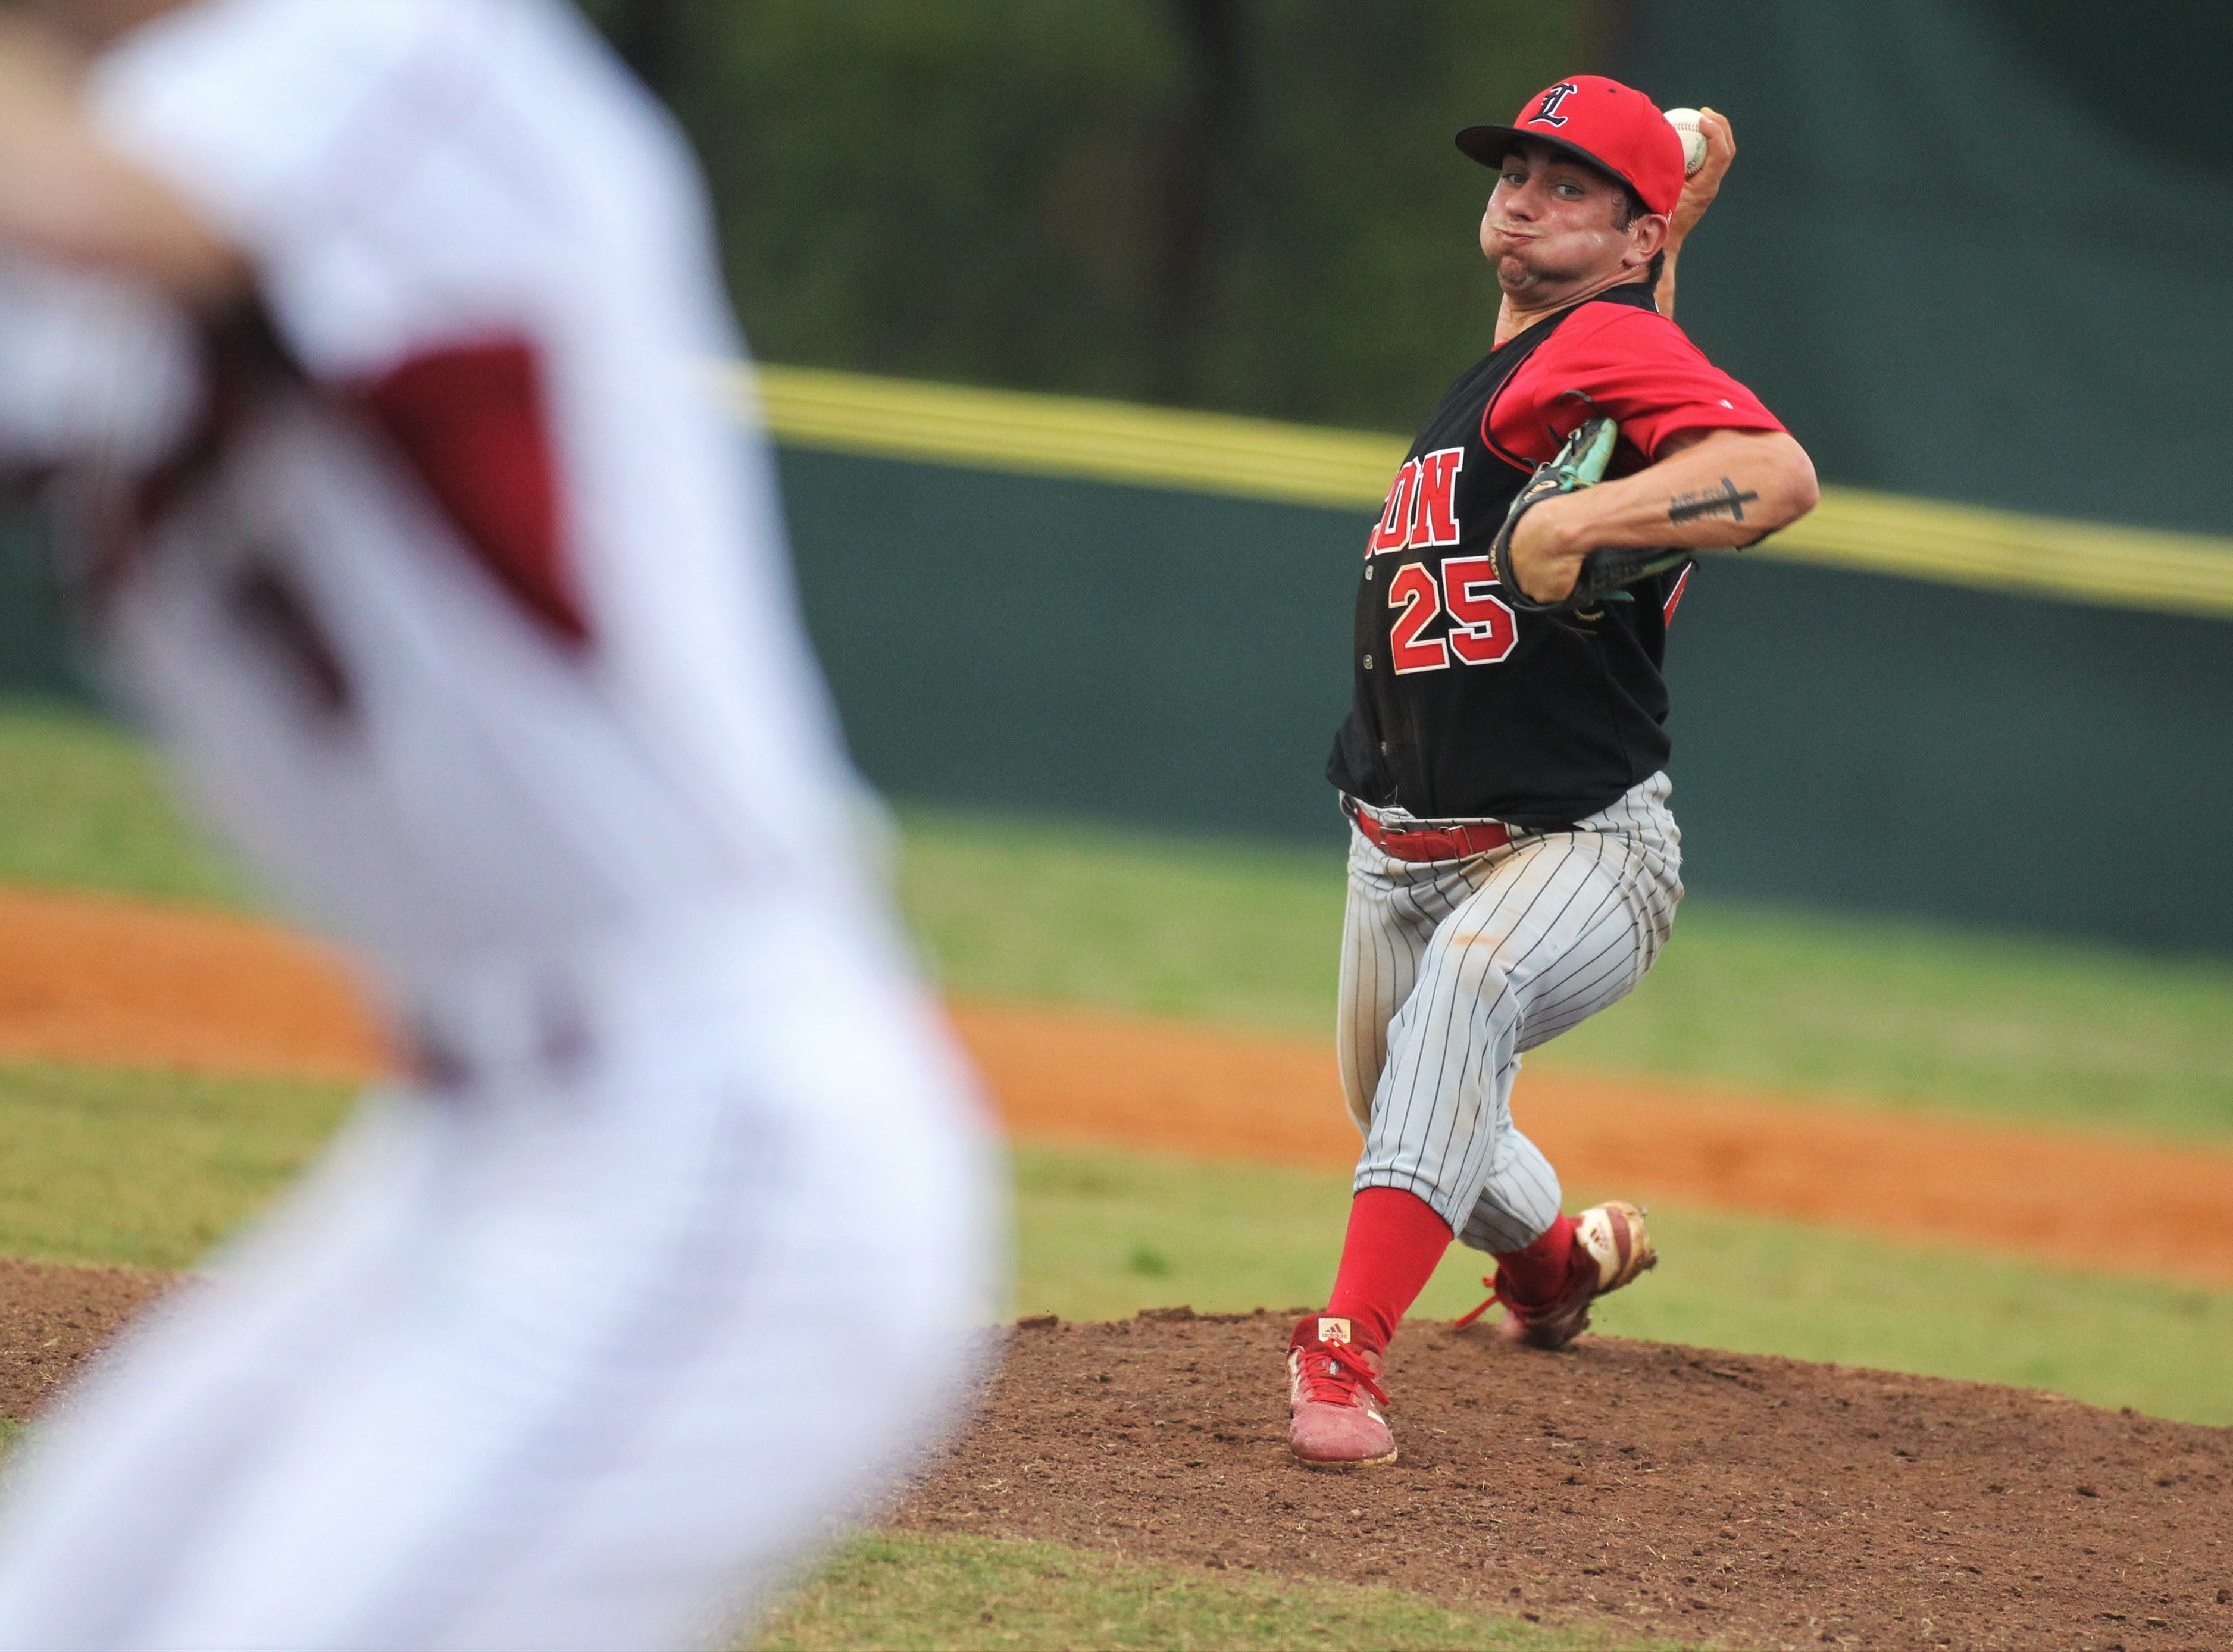 Leon senior Tyler Borges pitches as Chiles won an 11-6 home game against Leon on Friday, April 5, 2019, to force a season split. The Lions won 3-0 earlier in the week.